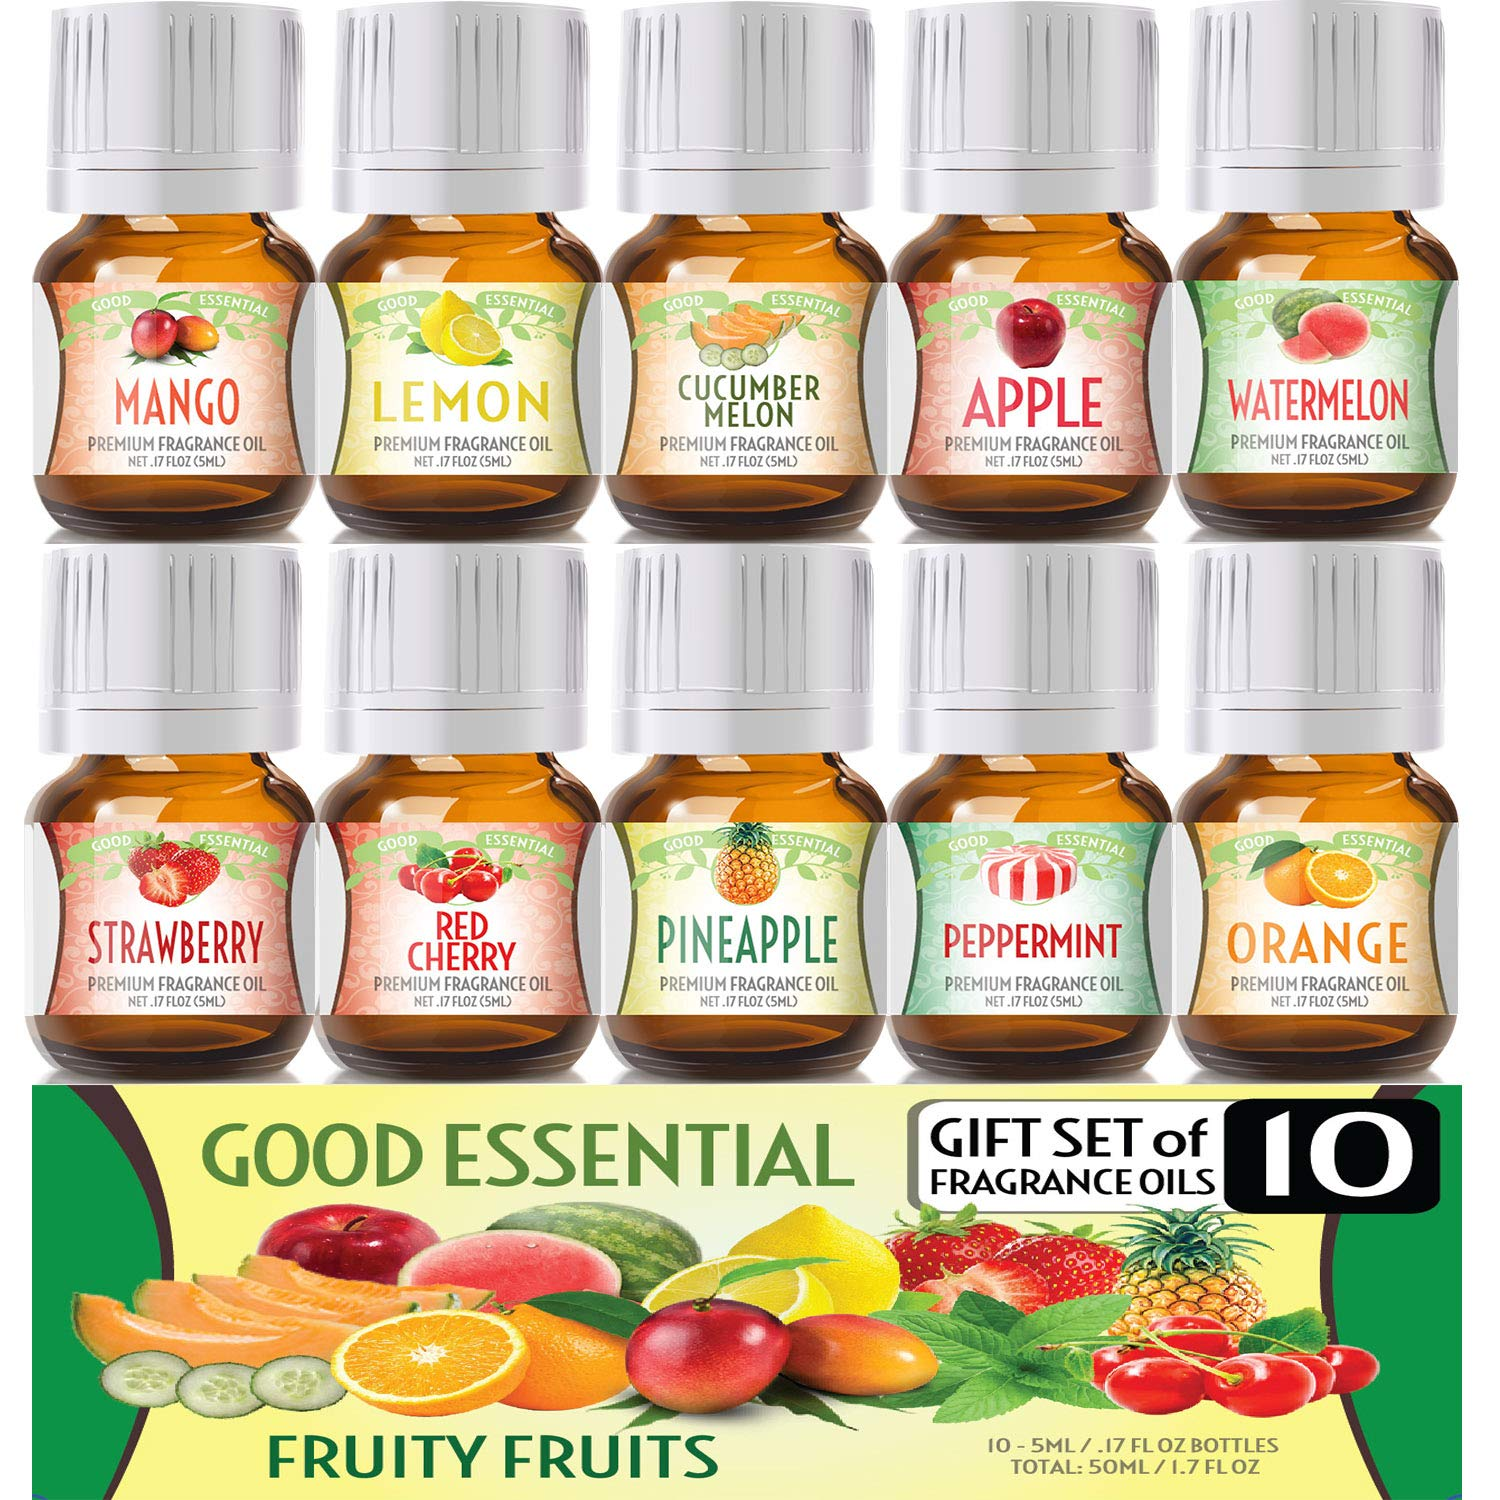 Fruity Fruits Good Essential Fragrance Oil Set (PACK OF 10) 5ml Set Includes Strawberry, Apple, Watermelon, Pineapple, Cucumber Melon, Red Cherry, Mango, Peppermint, Lemon, and Orange essential oils - 814orH N1yL - ESSENTIAL OILS – THE BEST PICKS FOR A GOOD HEALTH AND SLEEP HELP